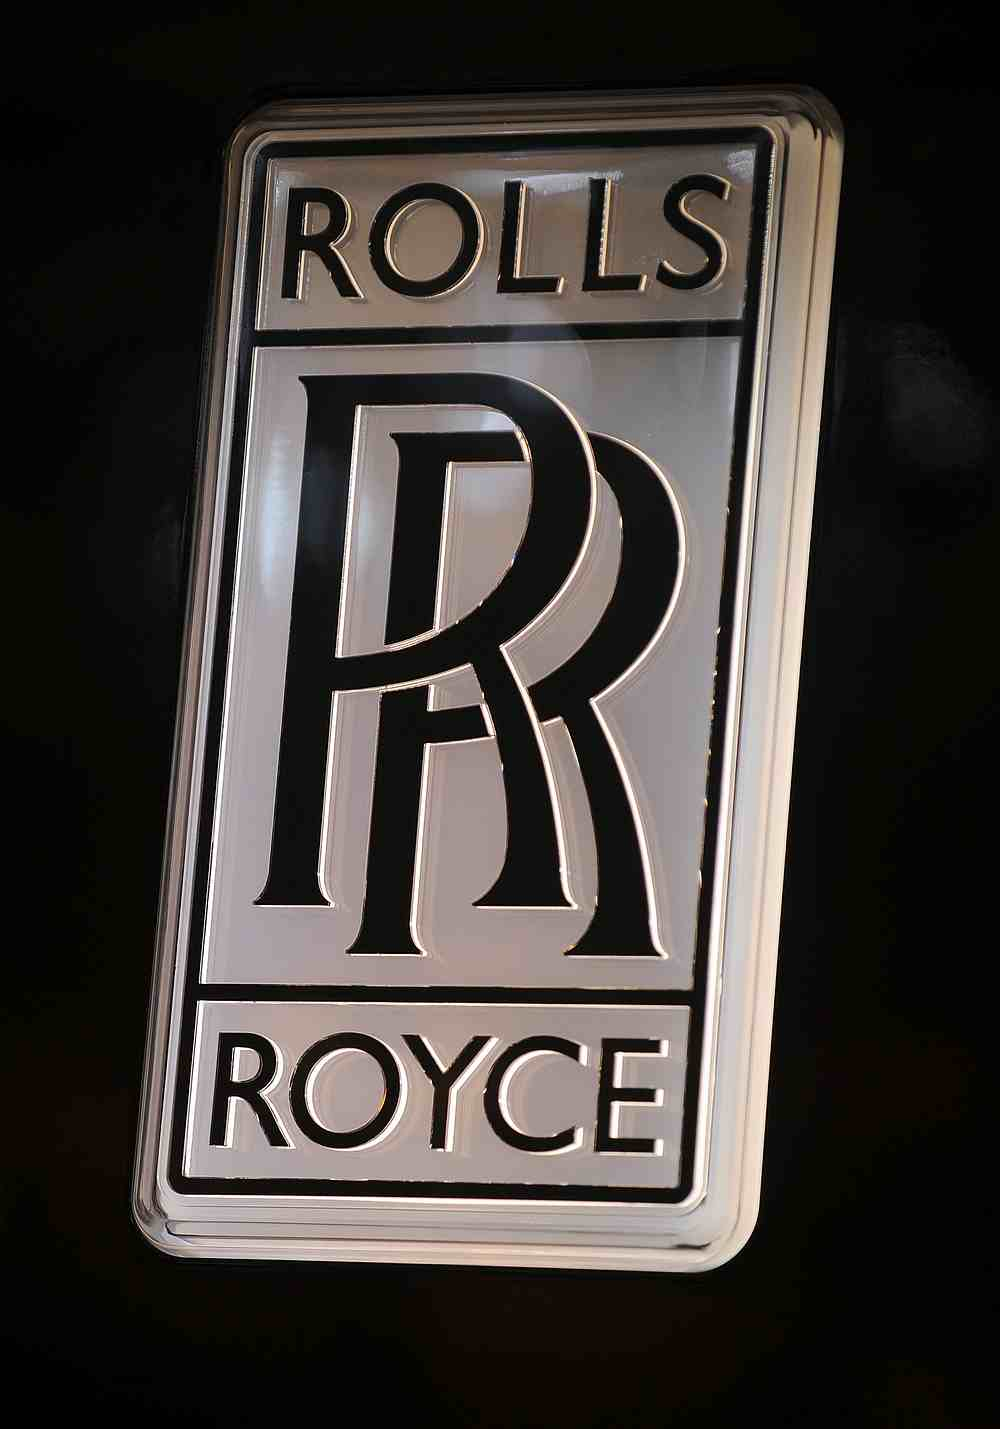 In the first half of this year, Rolls-Royce's sales fell by 30 per cent compared with the same period in 2019. — AFP pic